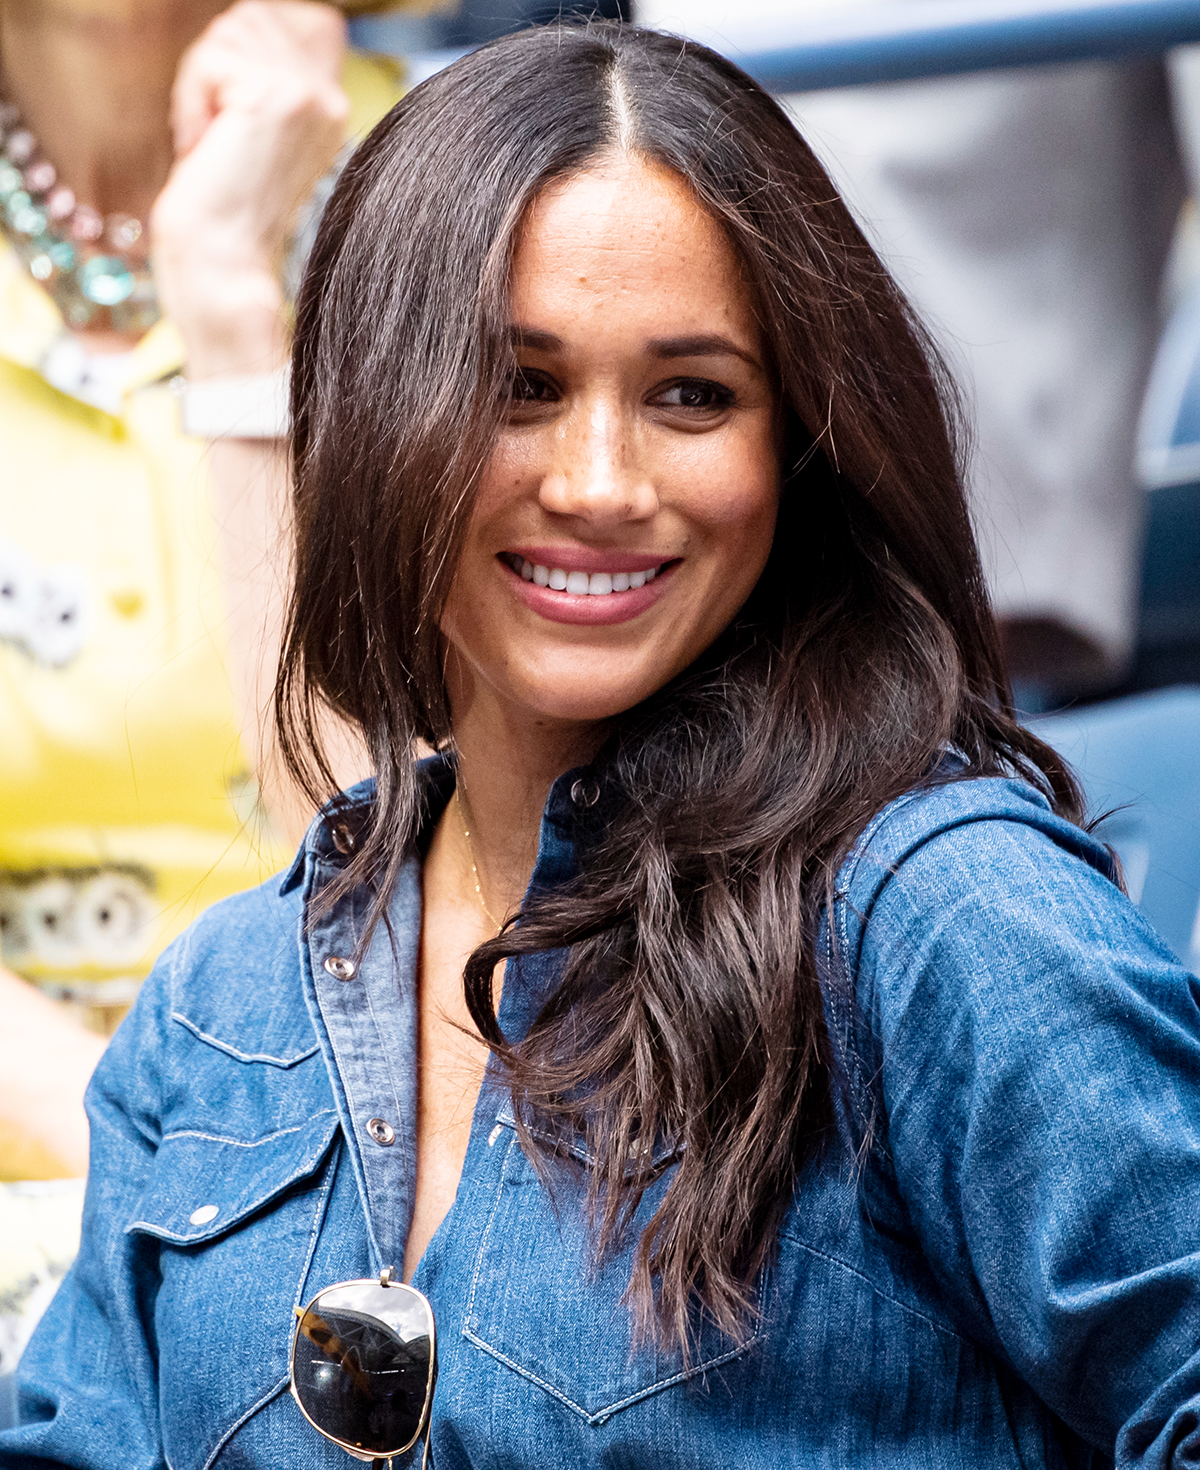 Megan Markle, The Duchess of Sussex, watches Serena Williams of the United States in action against Bianca Andreescu of Canada at Arthur Ashe Stadium at the USTA Billie Jean King National Tennis Center on September 07, 2019